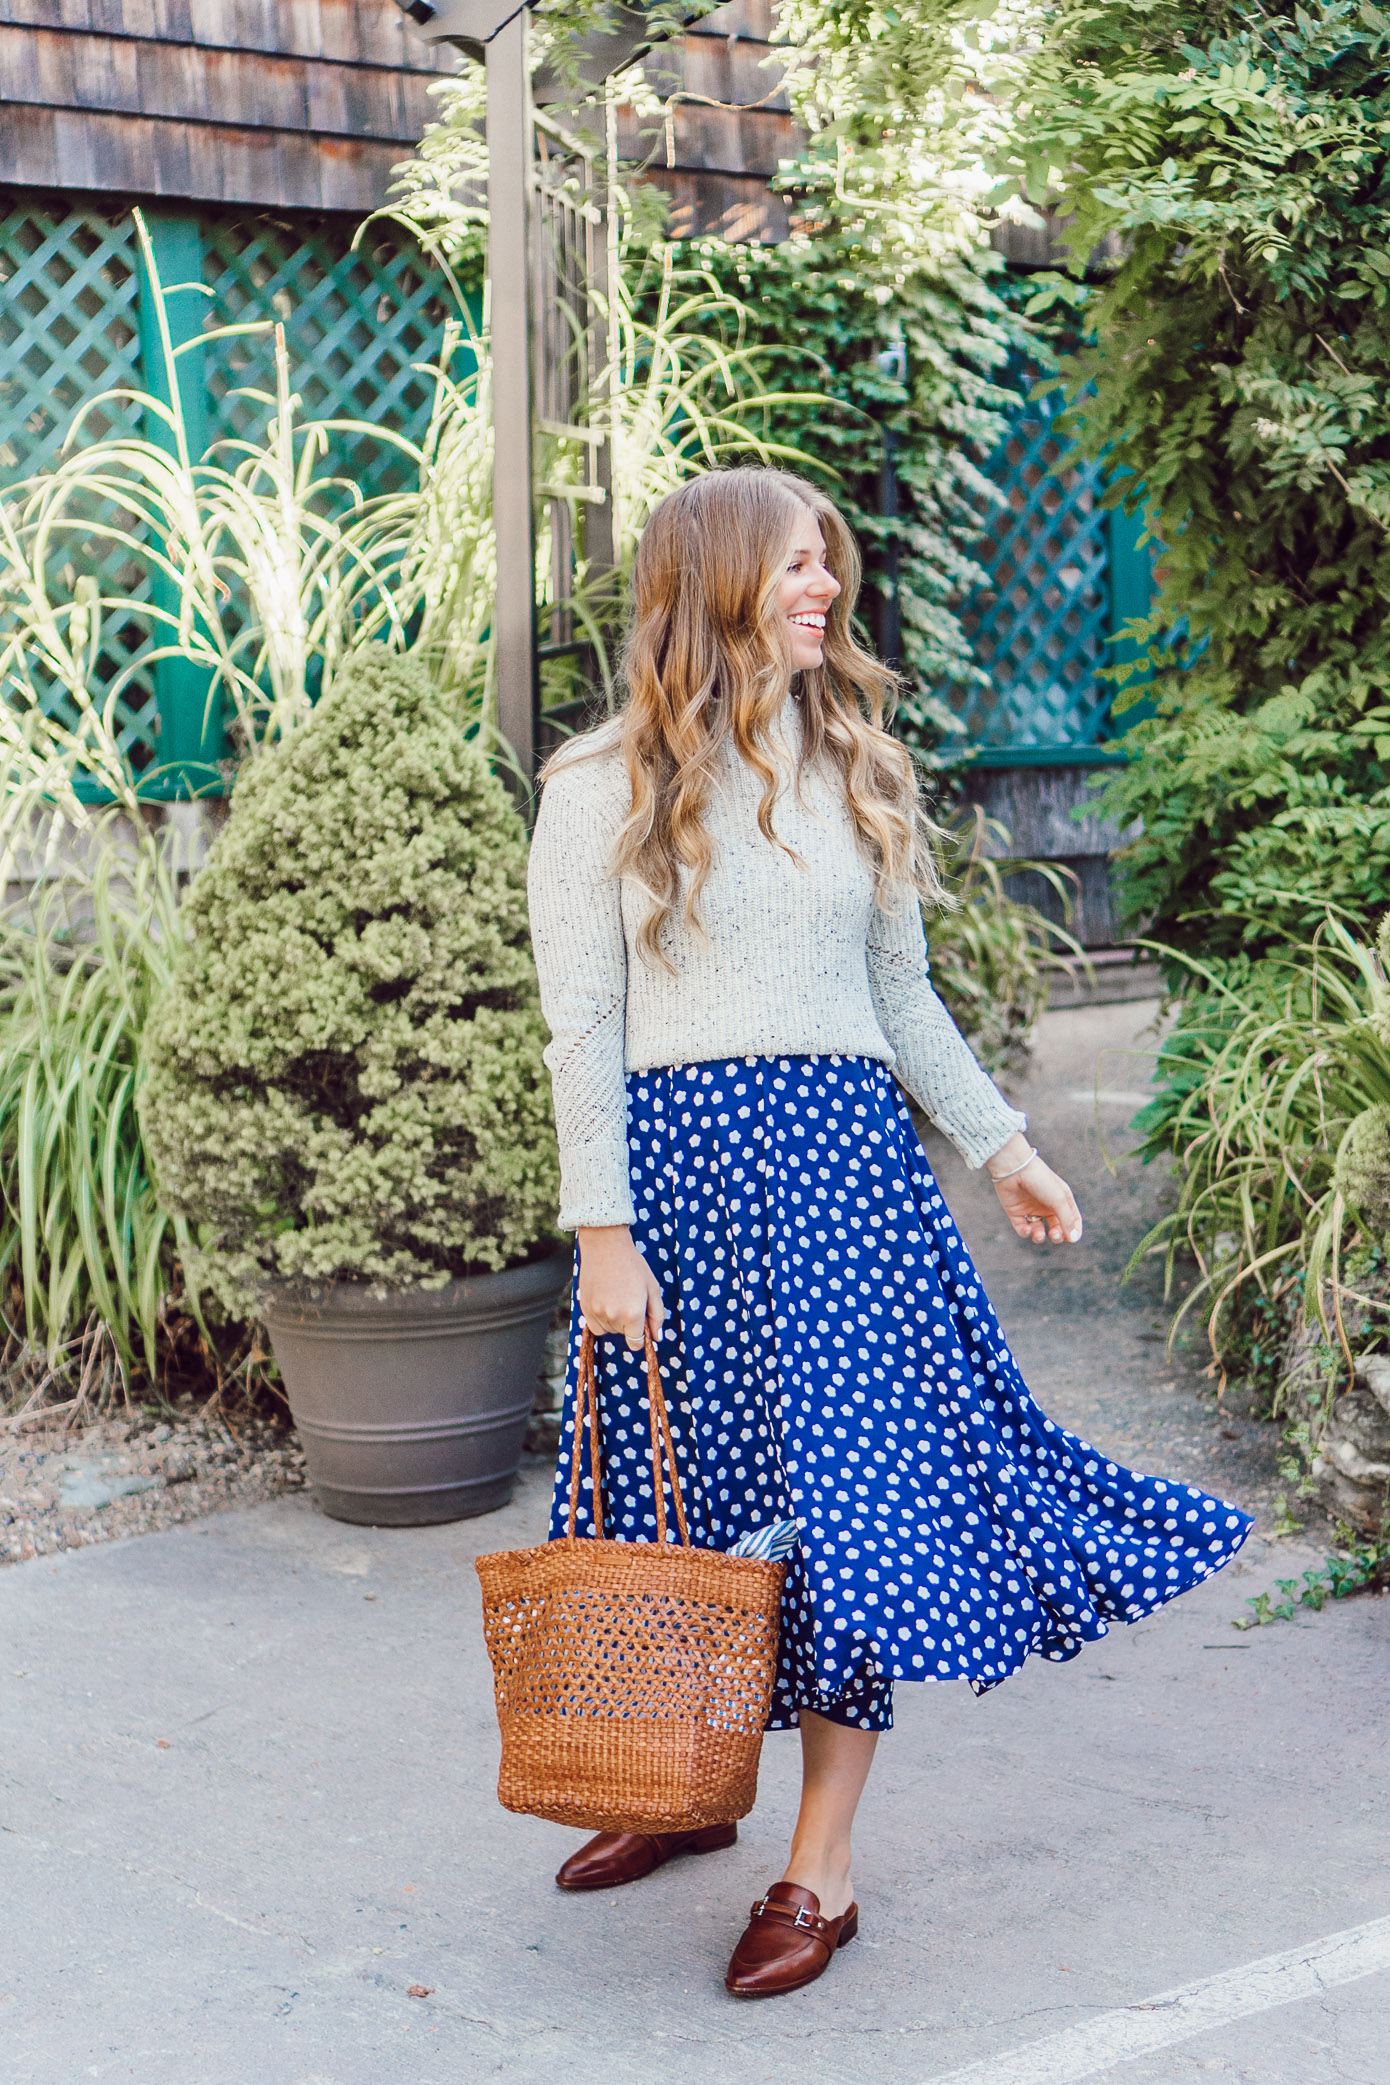 Fall Polka Dots | Preppy Fall Style featured on Louella Reese